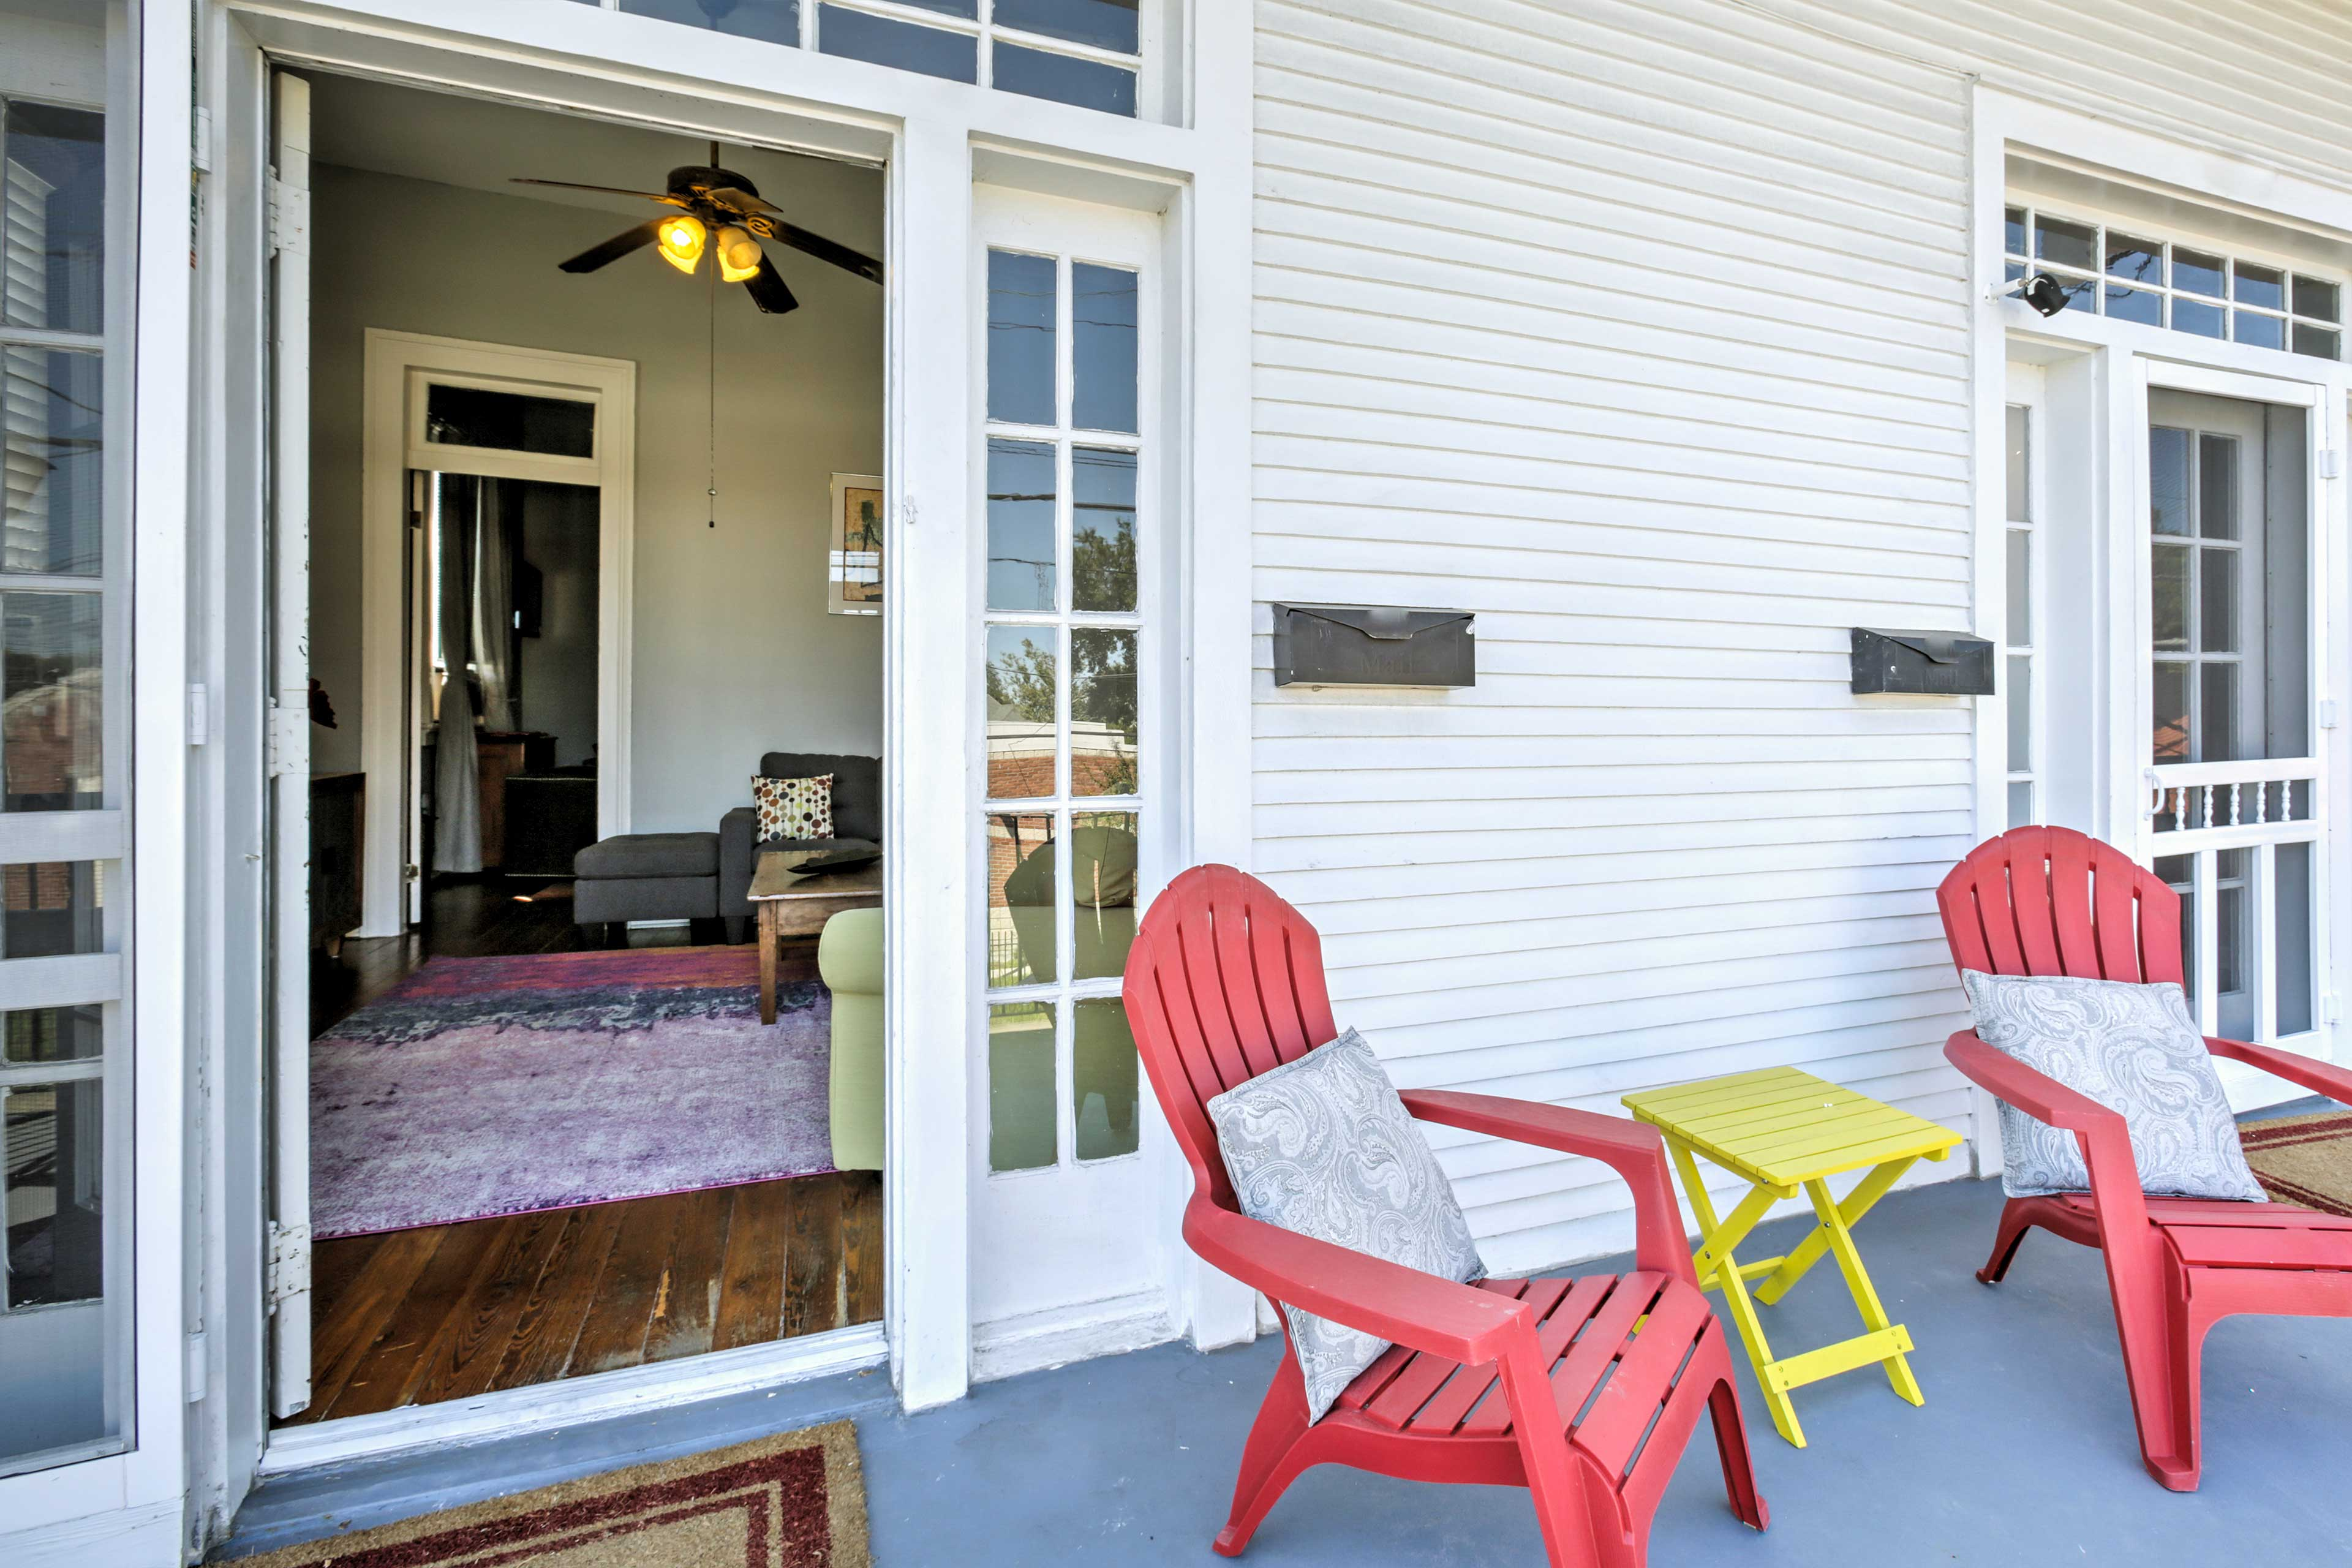 The French doors open out onto a large private front balcony.